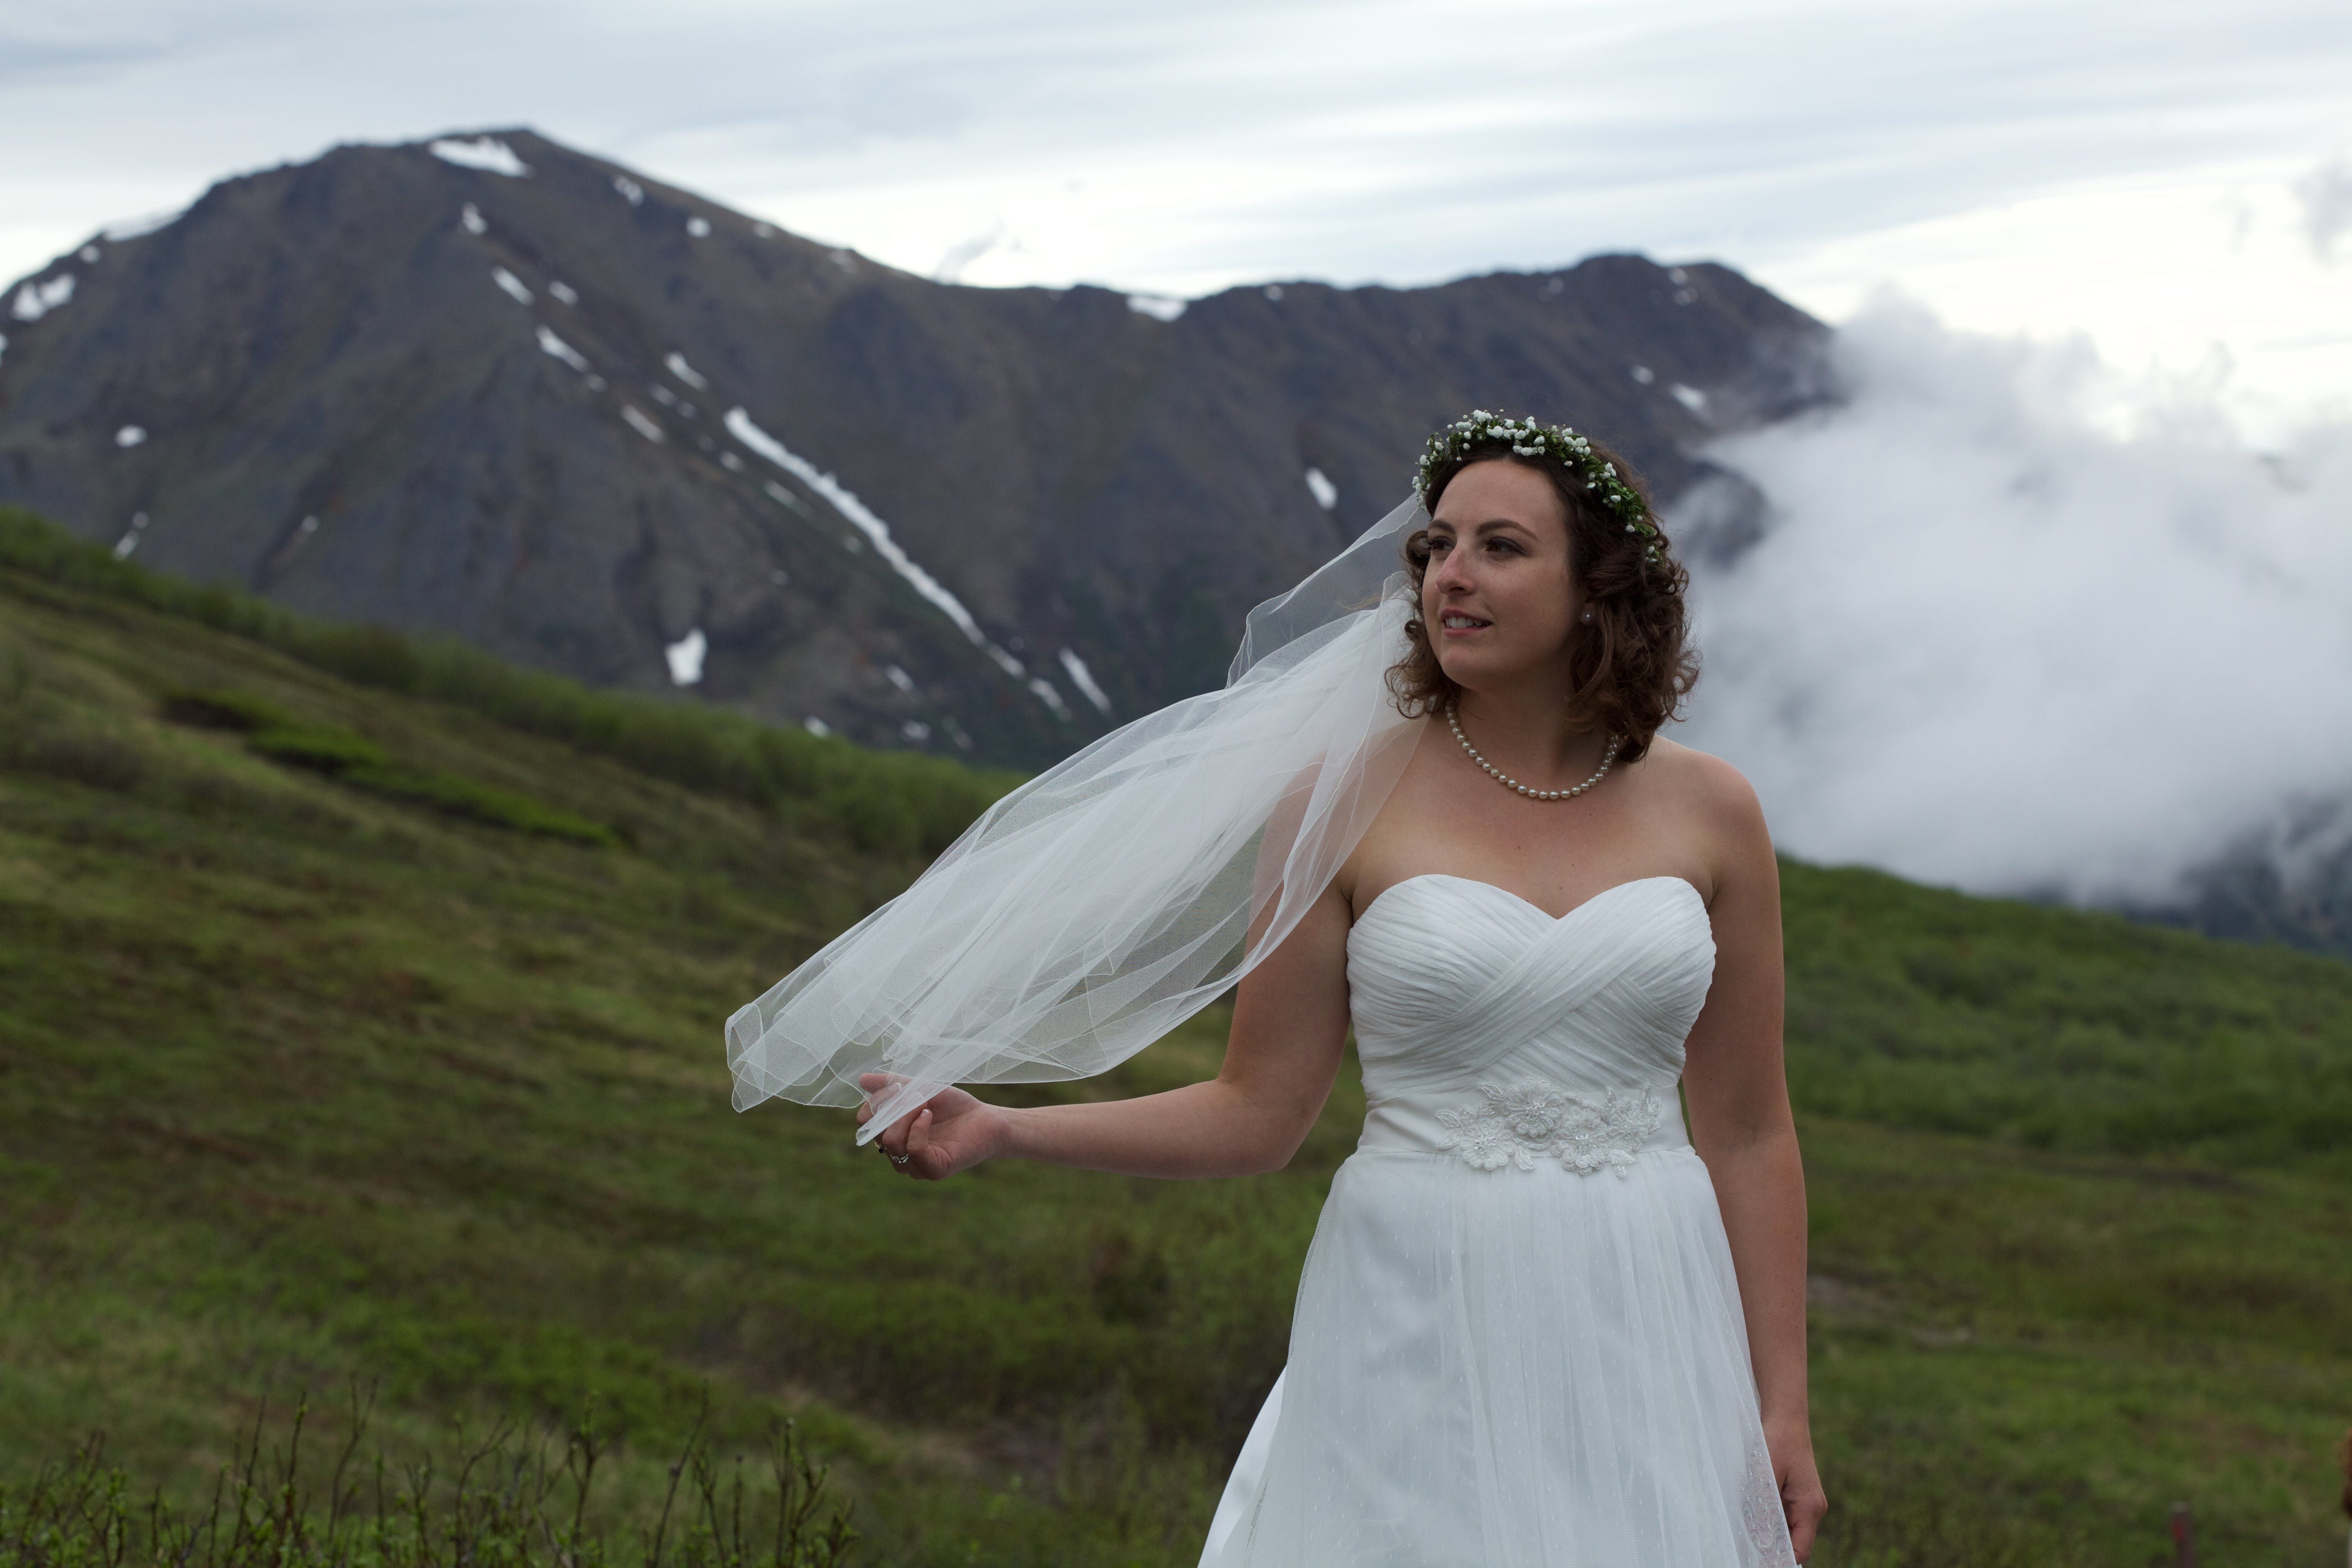 Woman Standing on Grass Wearing White Wedding Dress